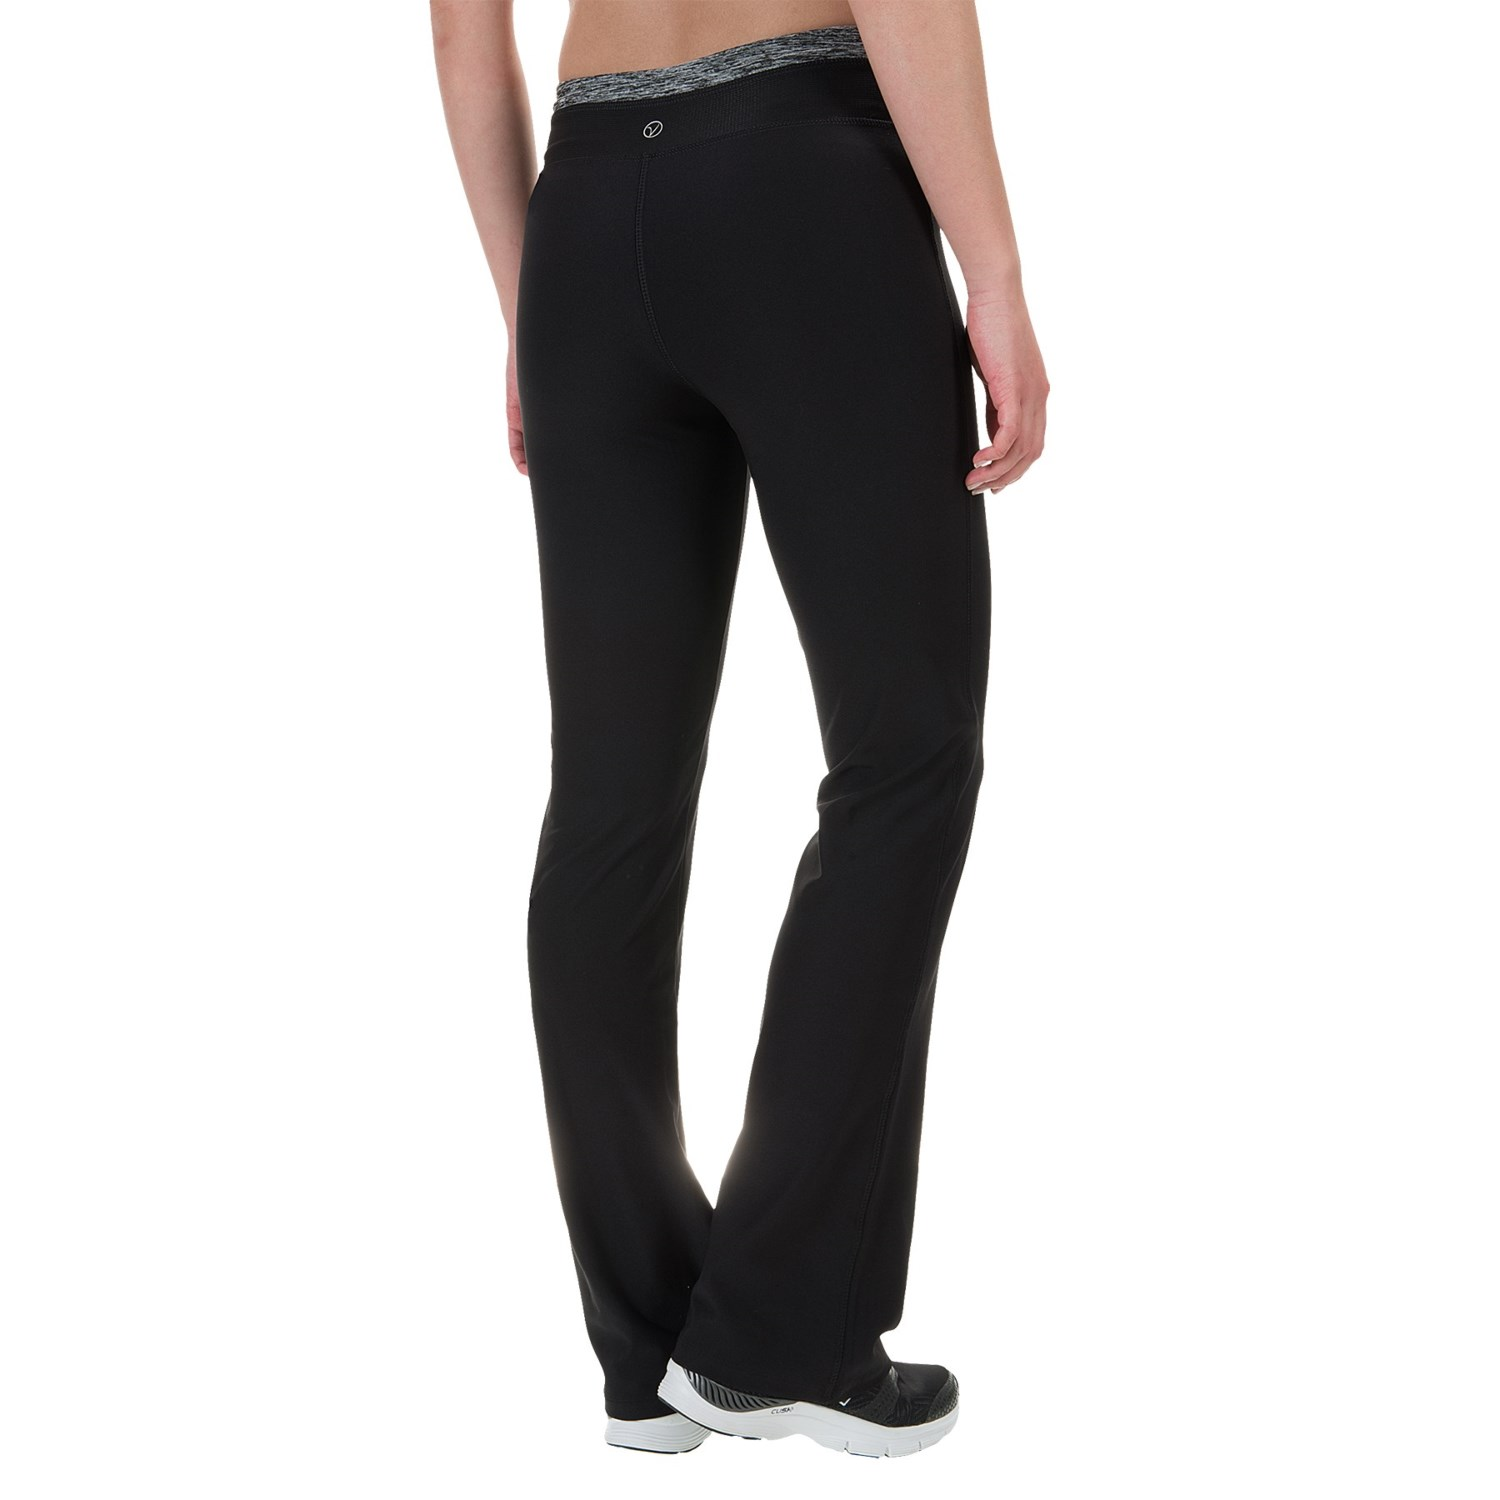 Vogo Bootcut Yoga Pants (For Women) - Save 50%